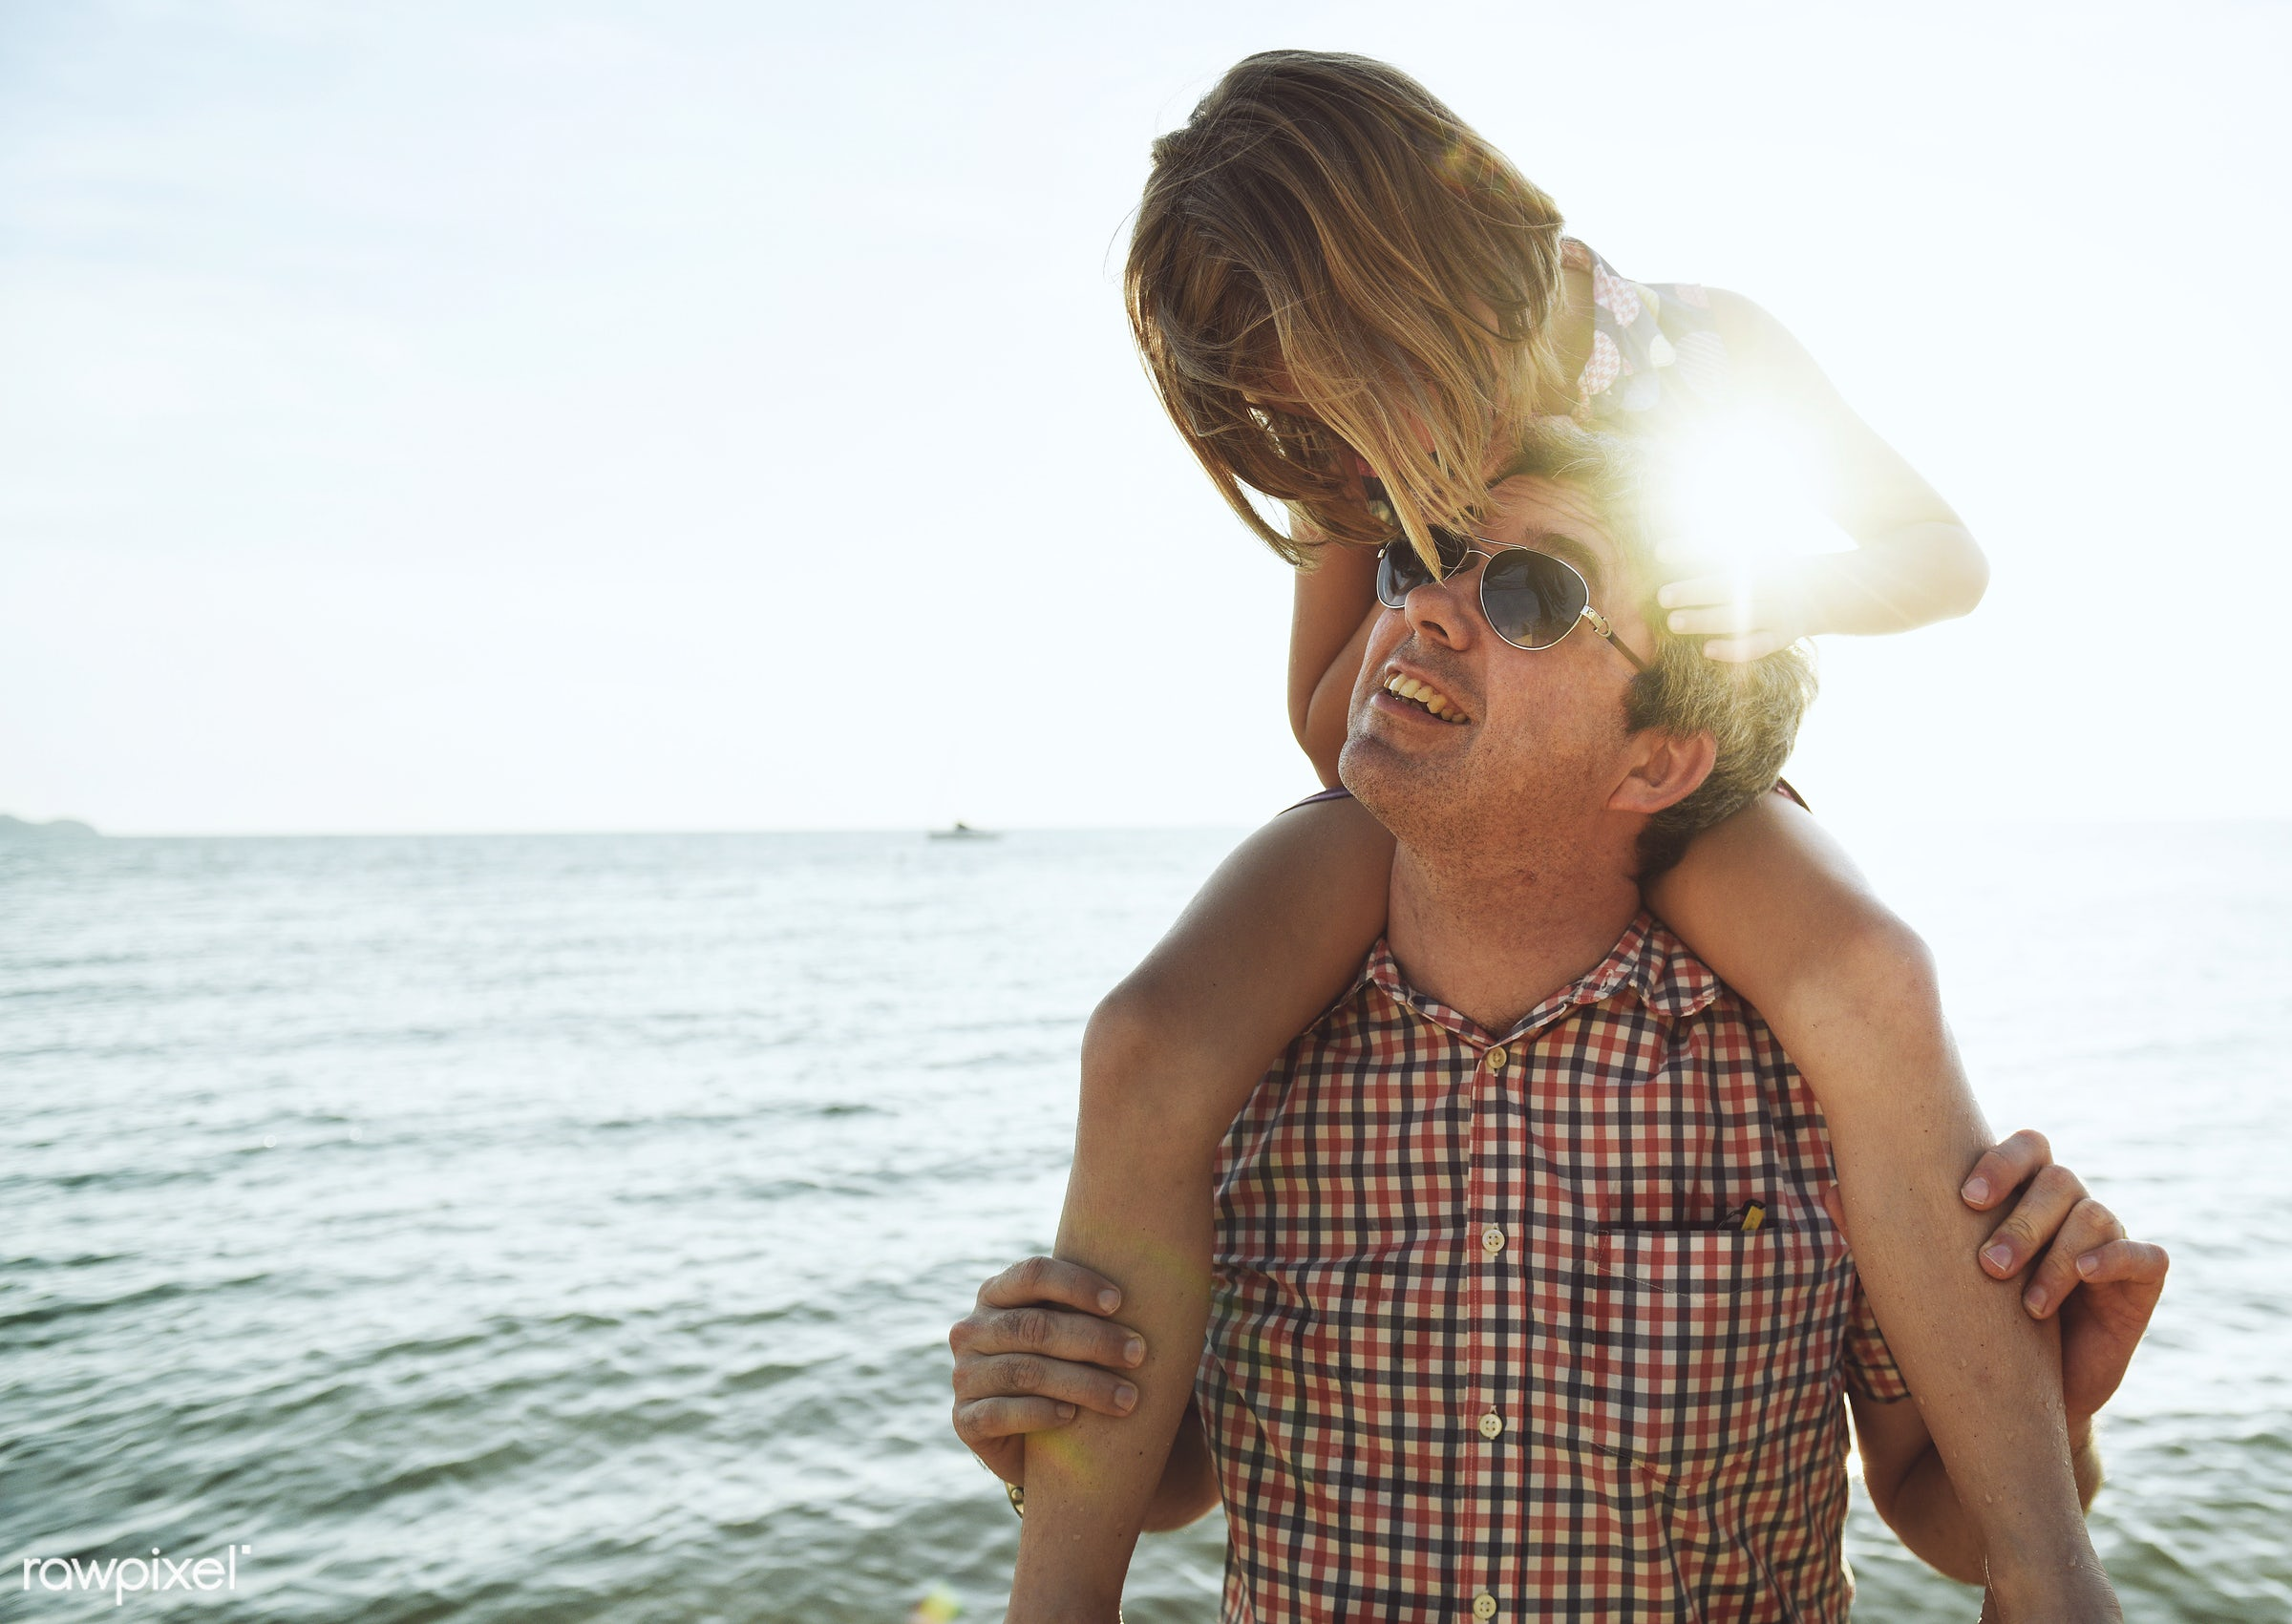 parents, piggy back ride, daughter, beach, together, father, girl, sky, family, casual, childhood, smiling, dad, sea,...